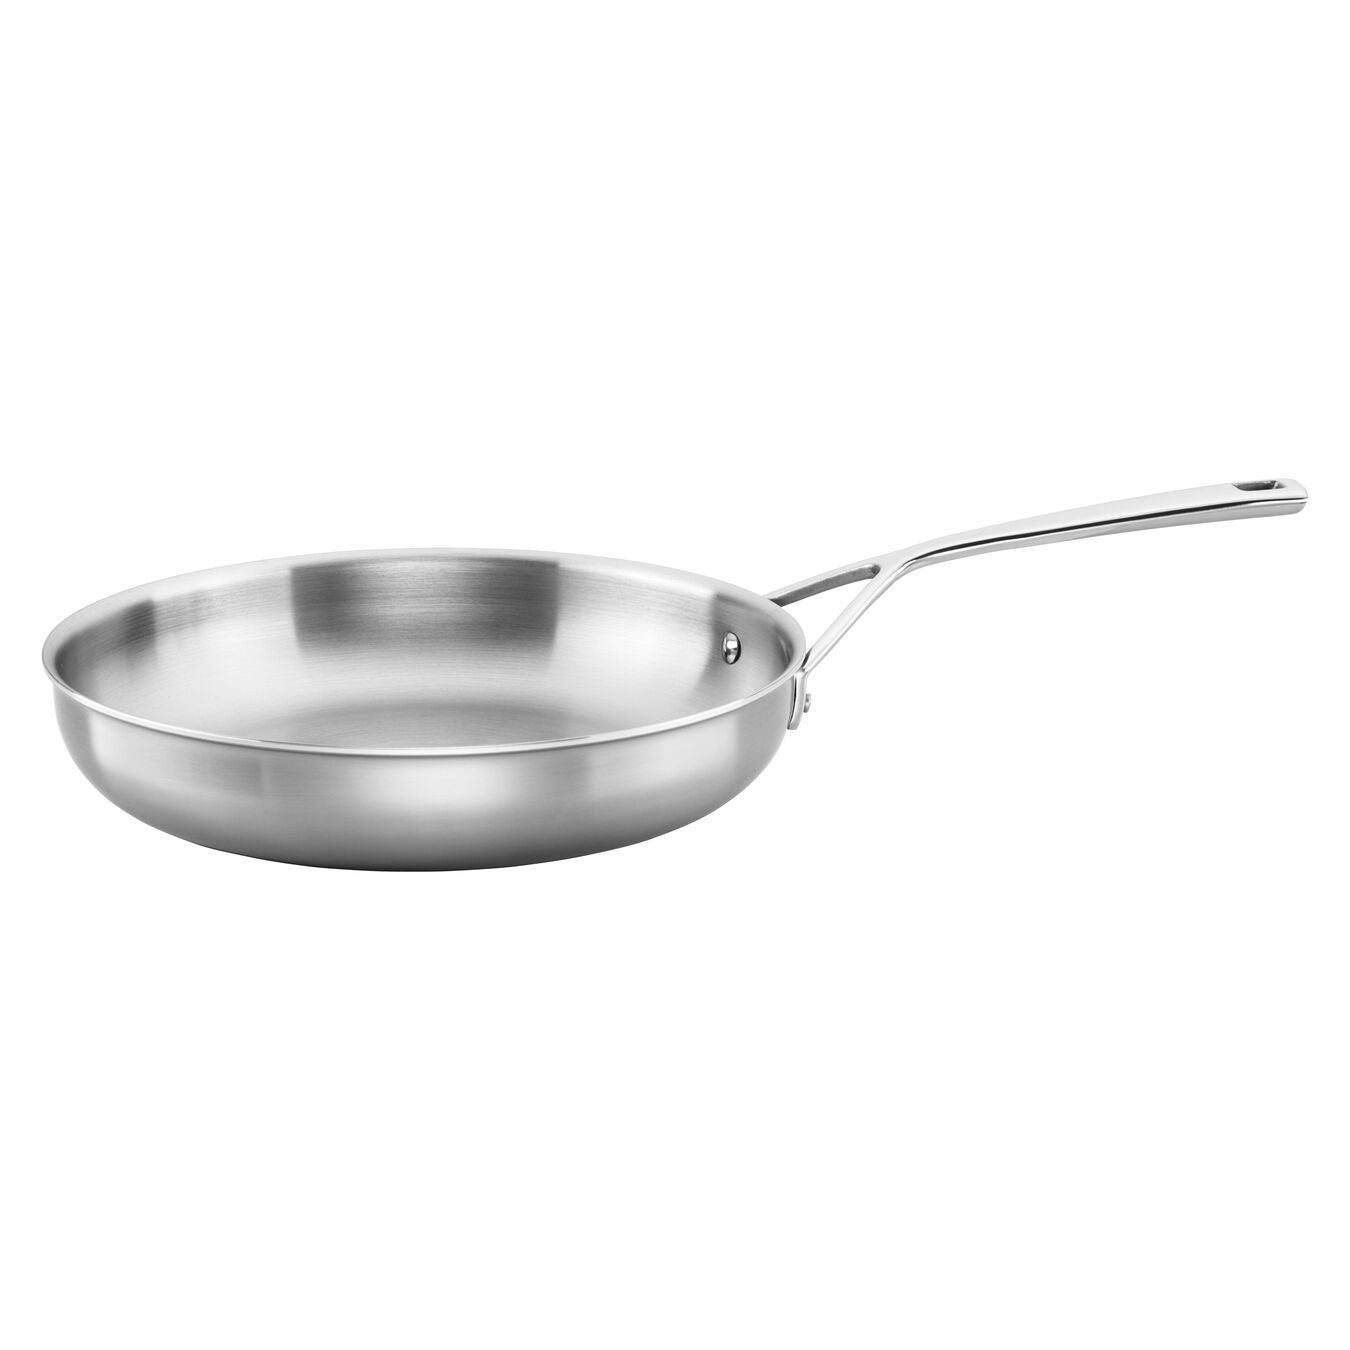 5 Ply, 18/10 Stainless Steel, 11-inch, Frying pan,,large 1